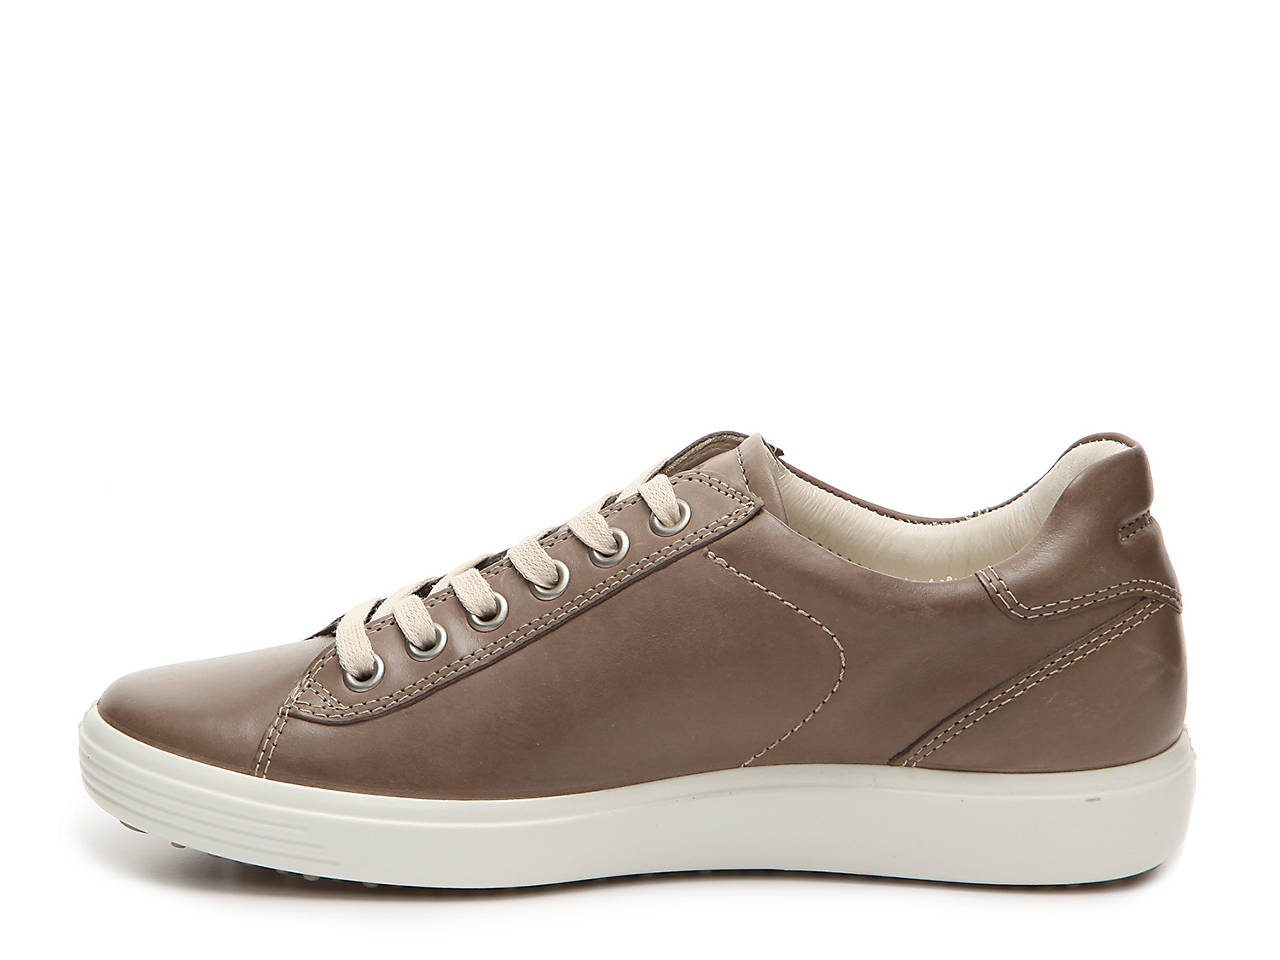 dsw ecco shoes